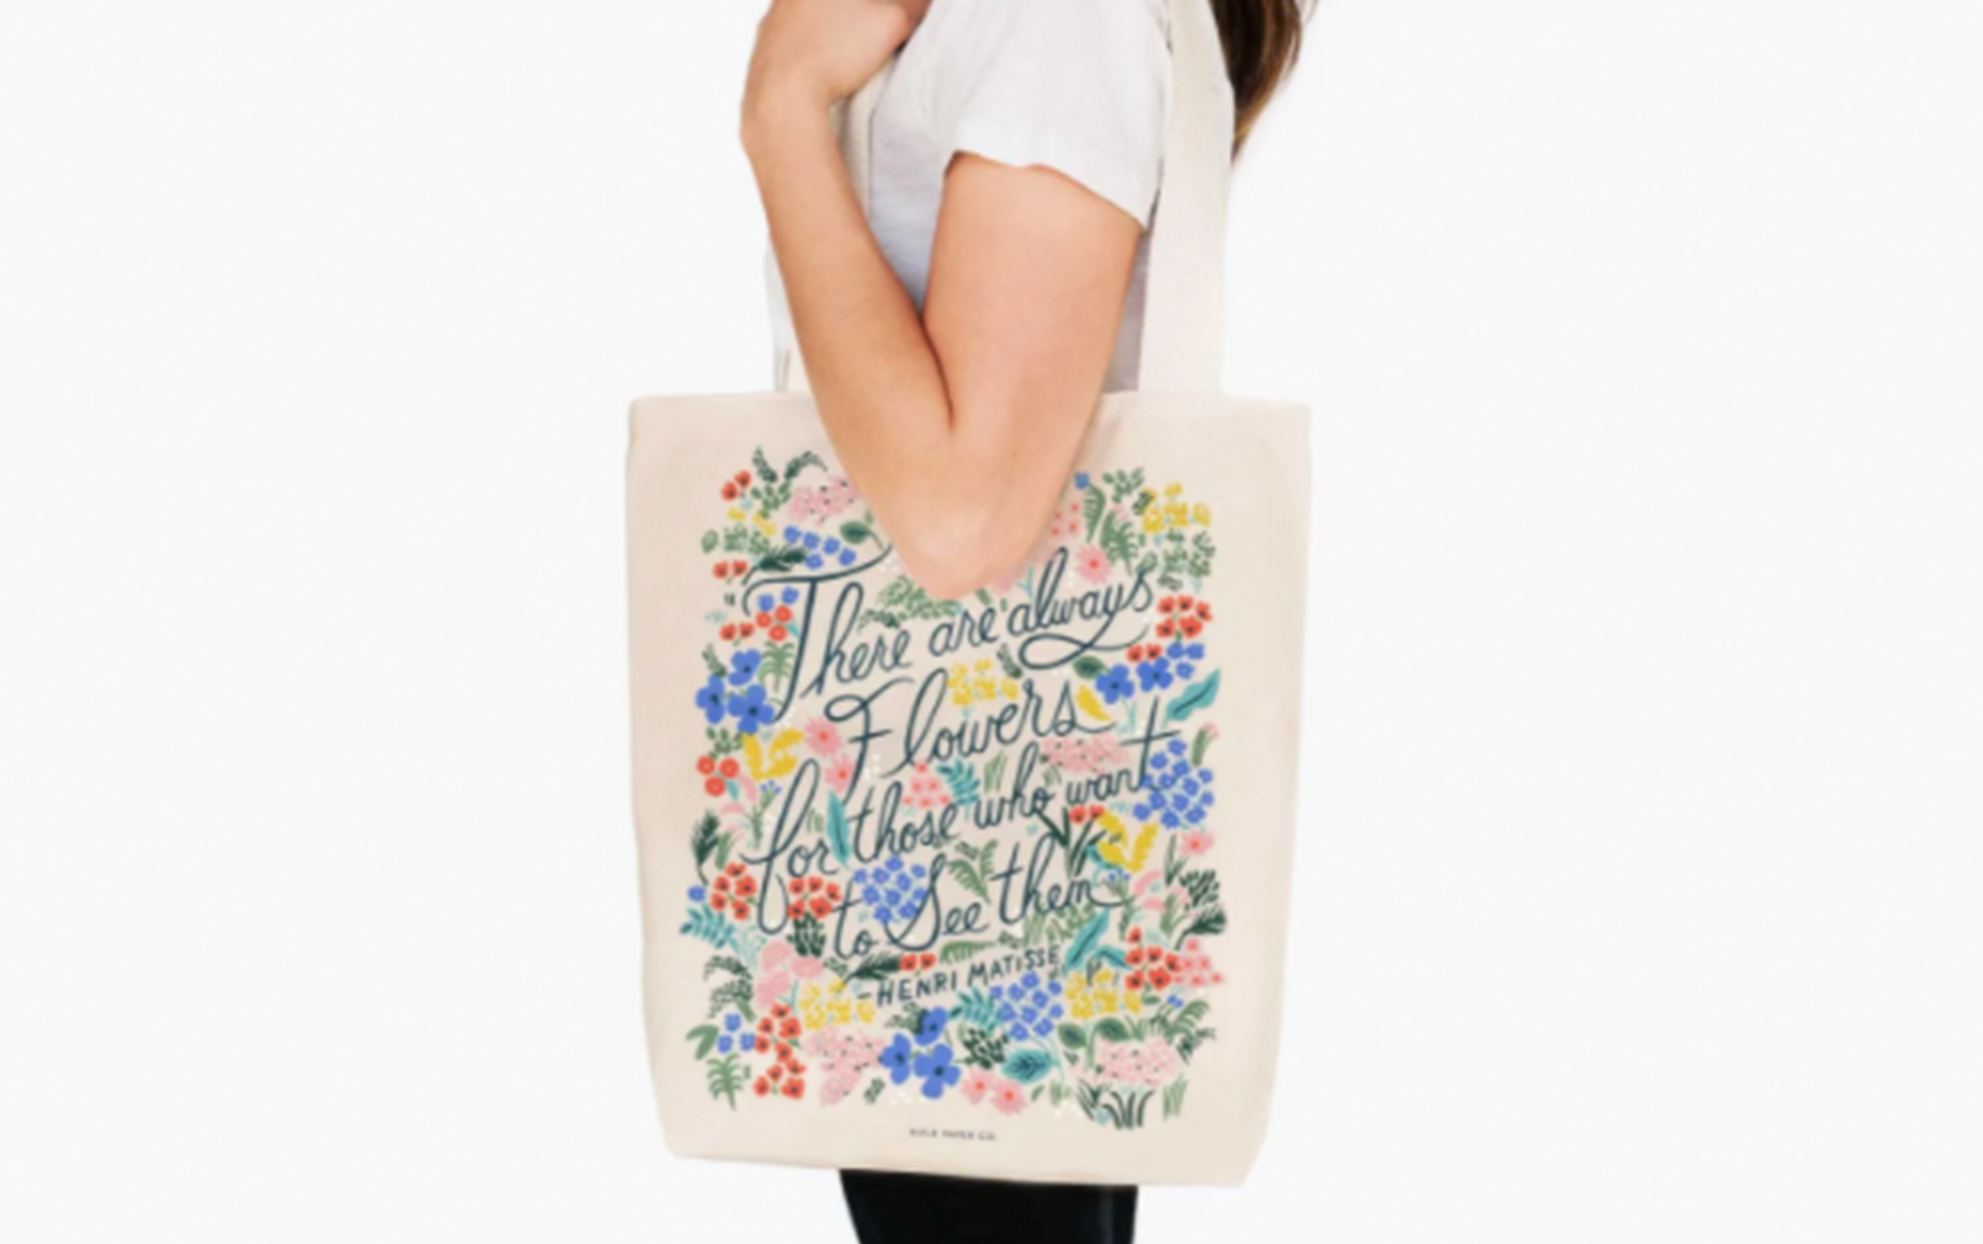 Young woman carrying a Henri Matisse canvas tote bag